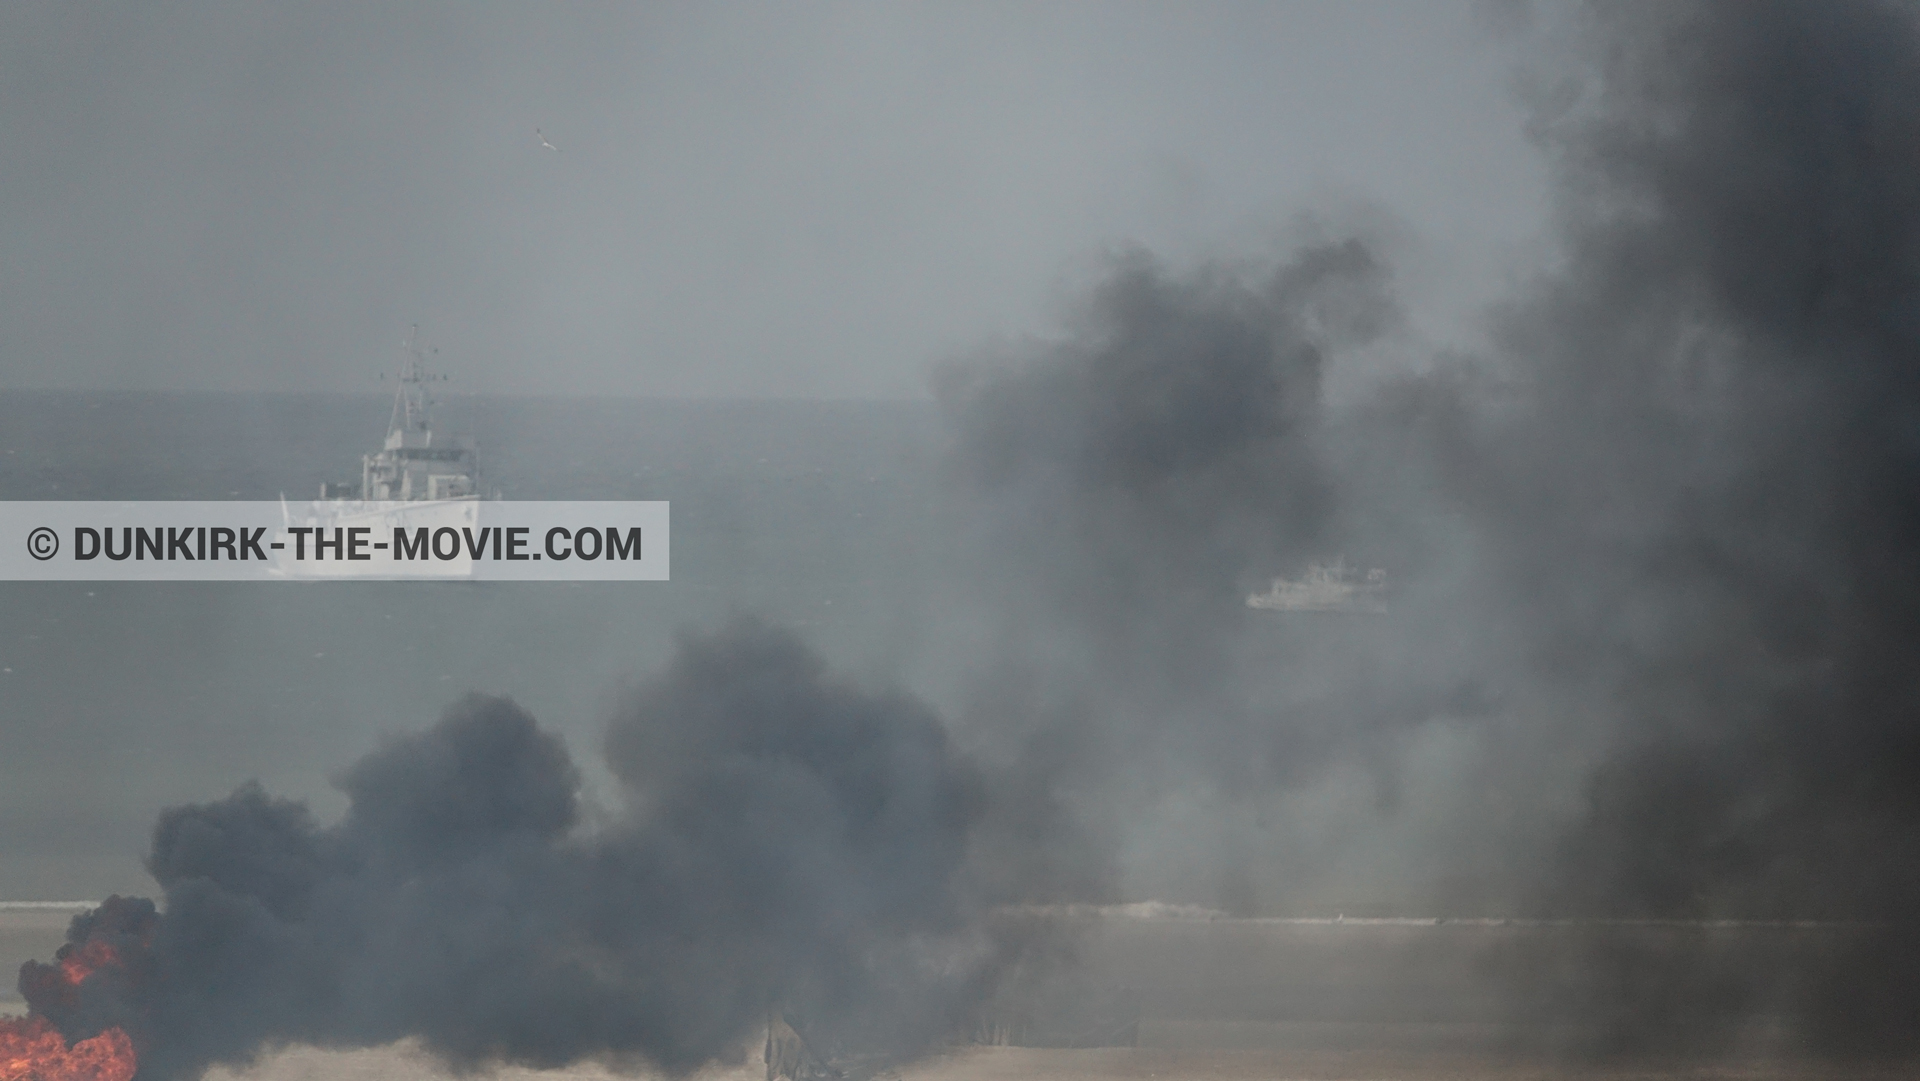 Picture with boat, black smoke, beach,  from behind the scene of the Dunkirk movie by Nolan